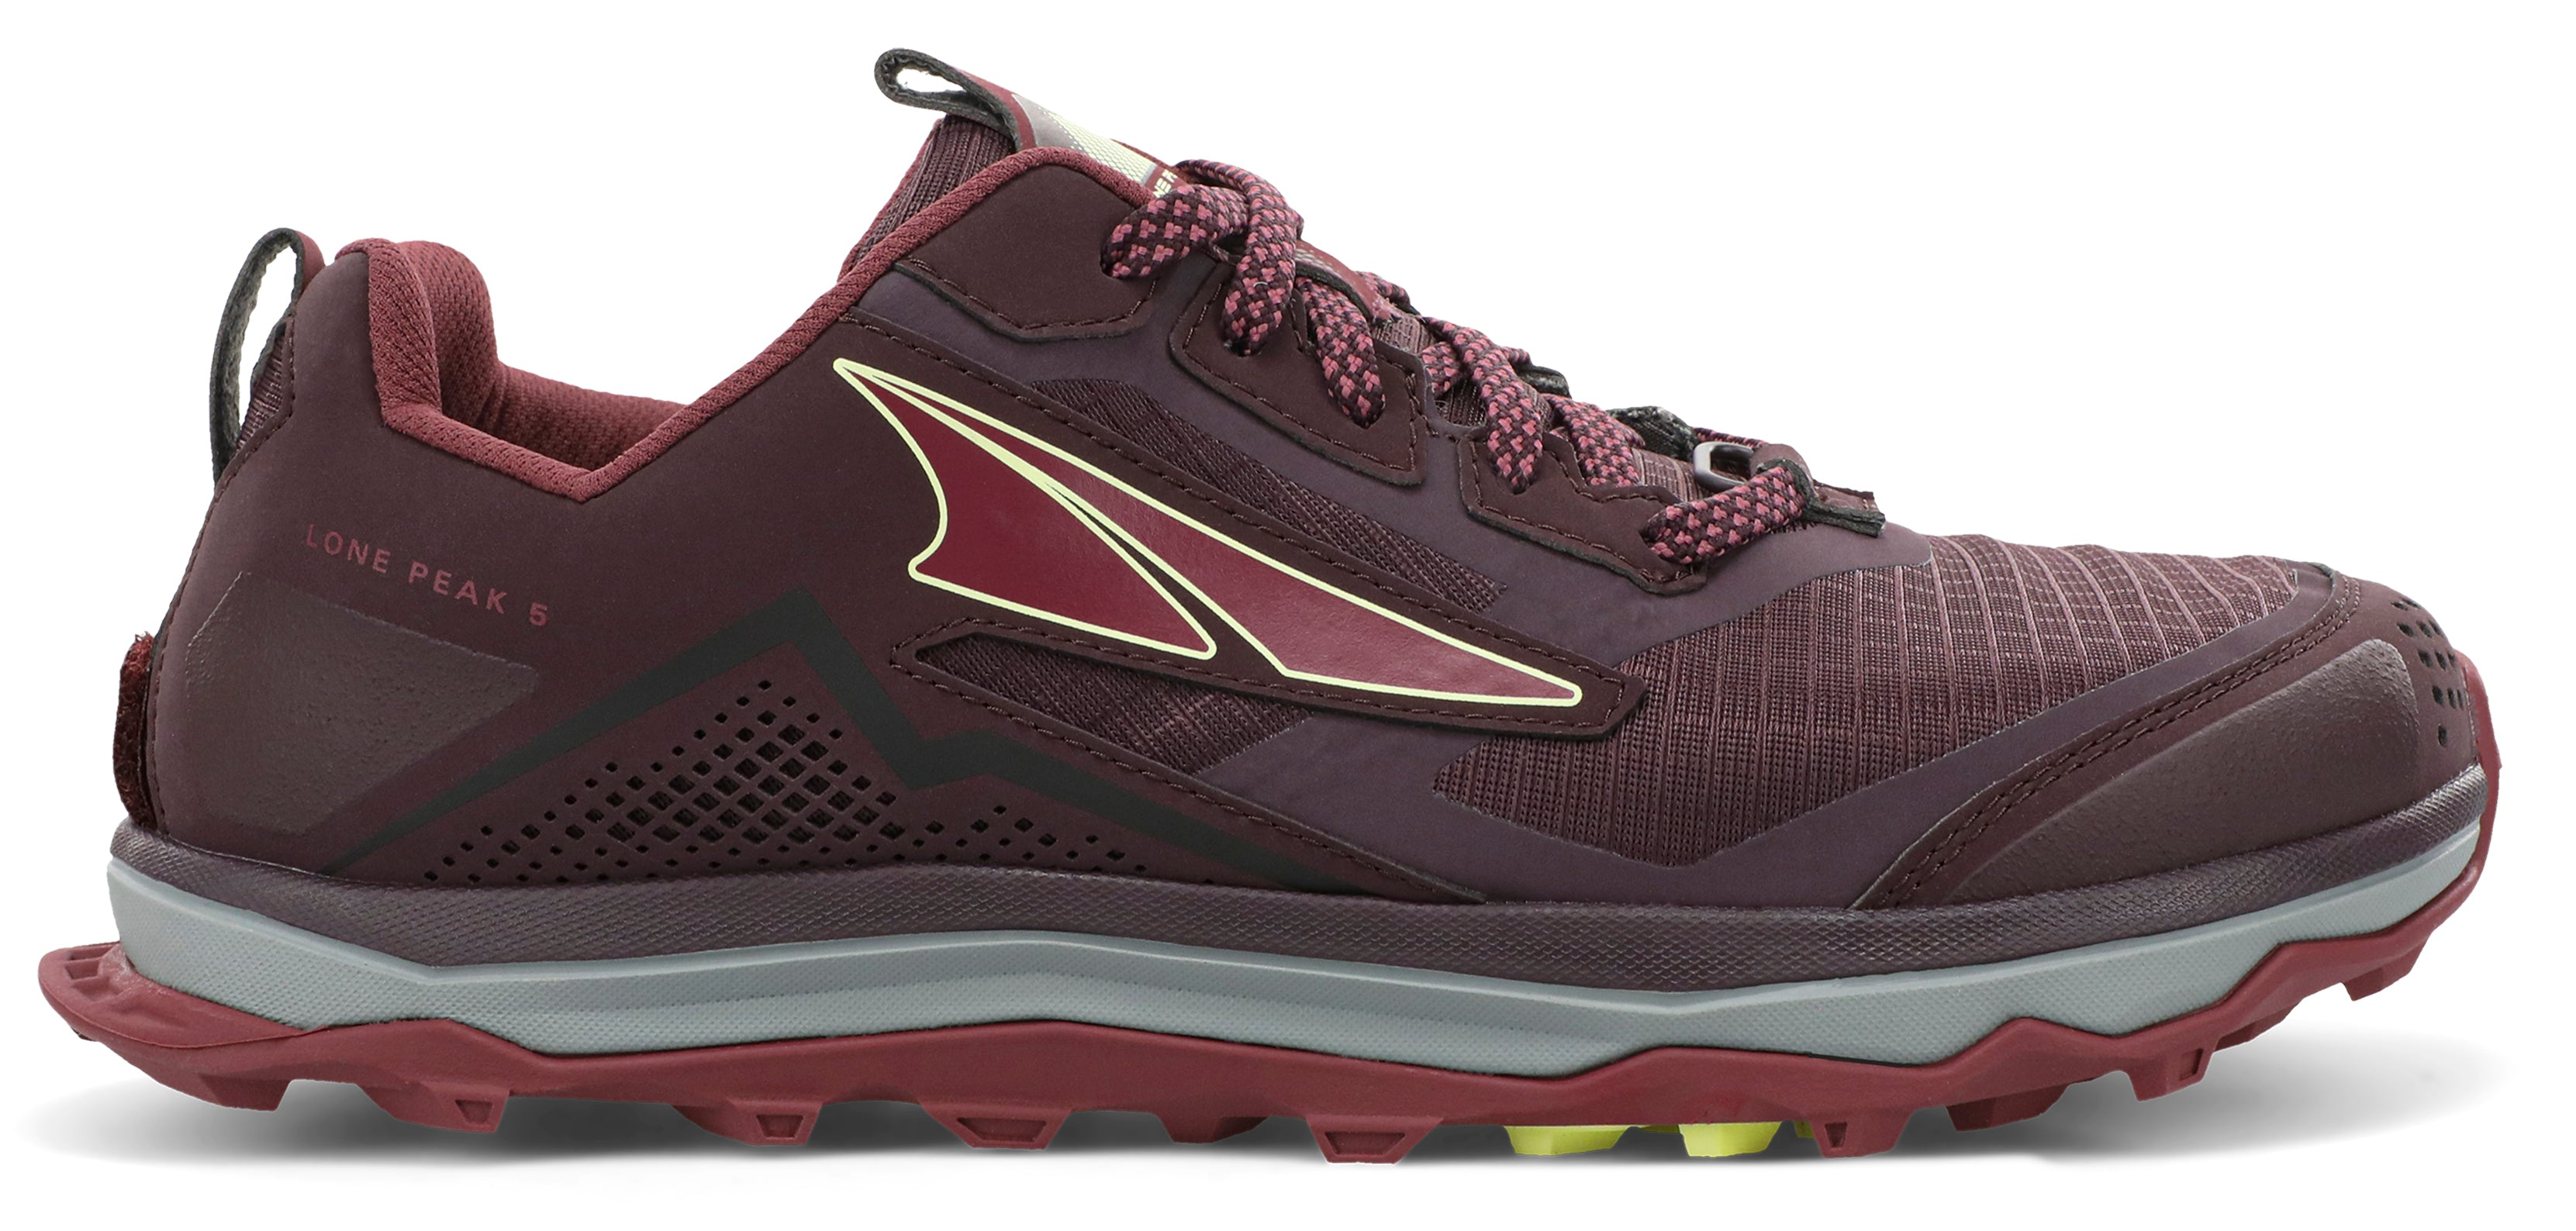 Altra Women's Lone Peak 5 Trail Running Shoe in Dark Port/Light Rose from the side